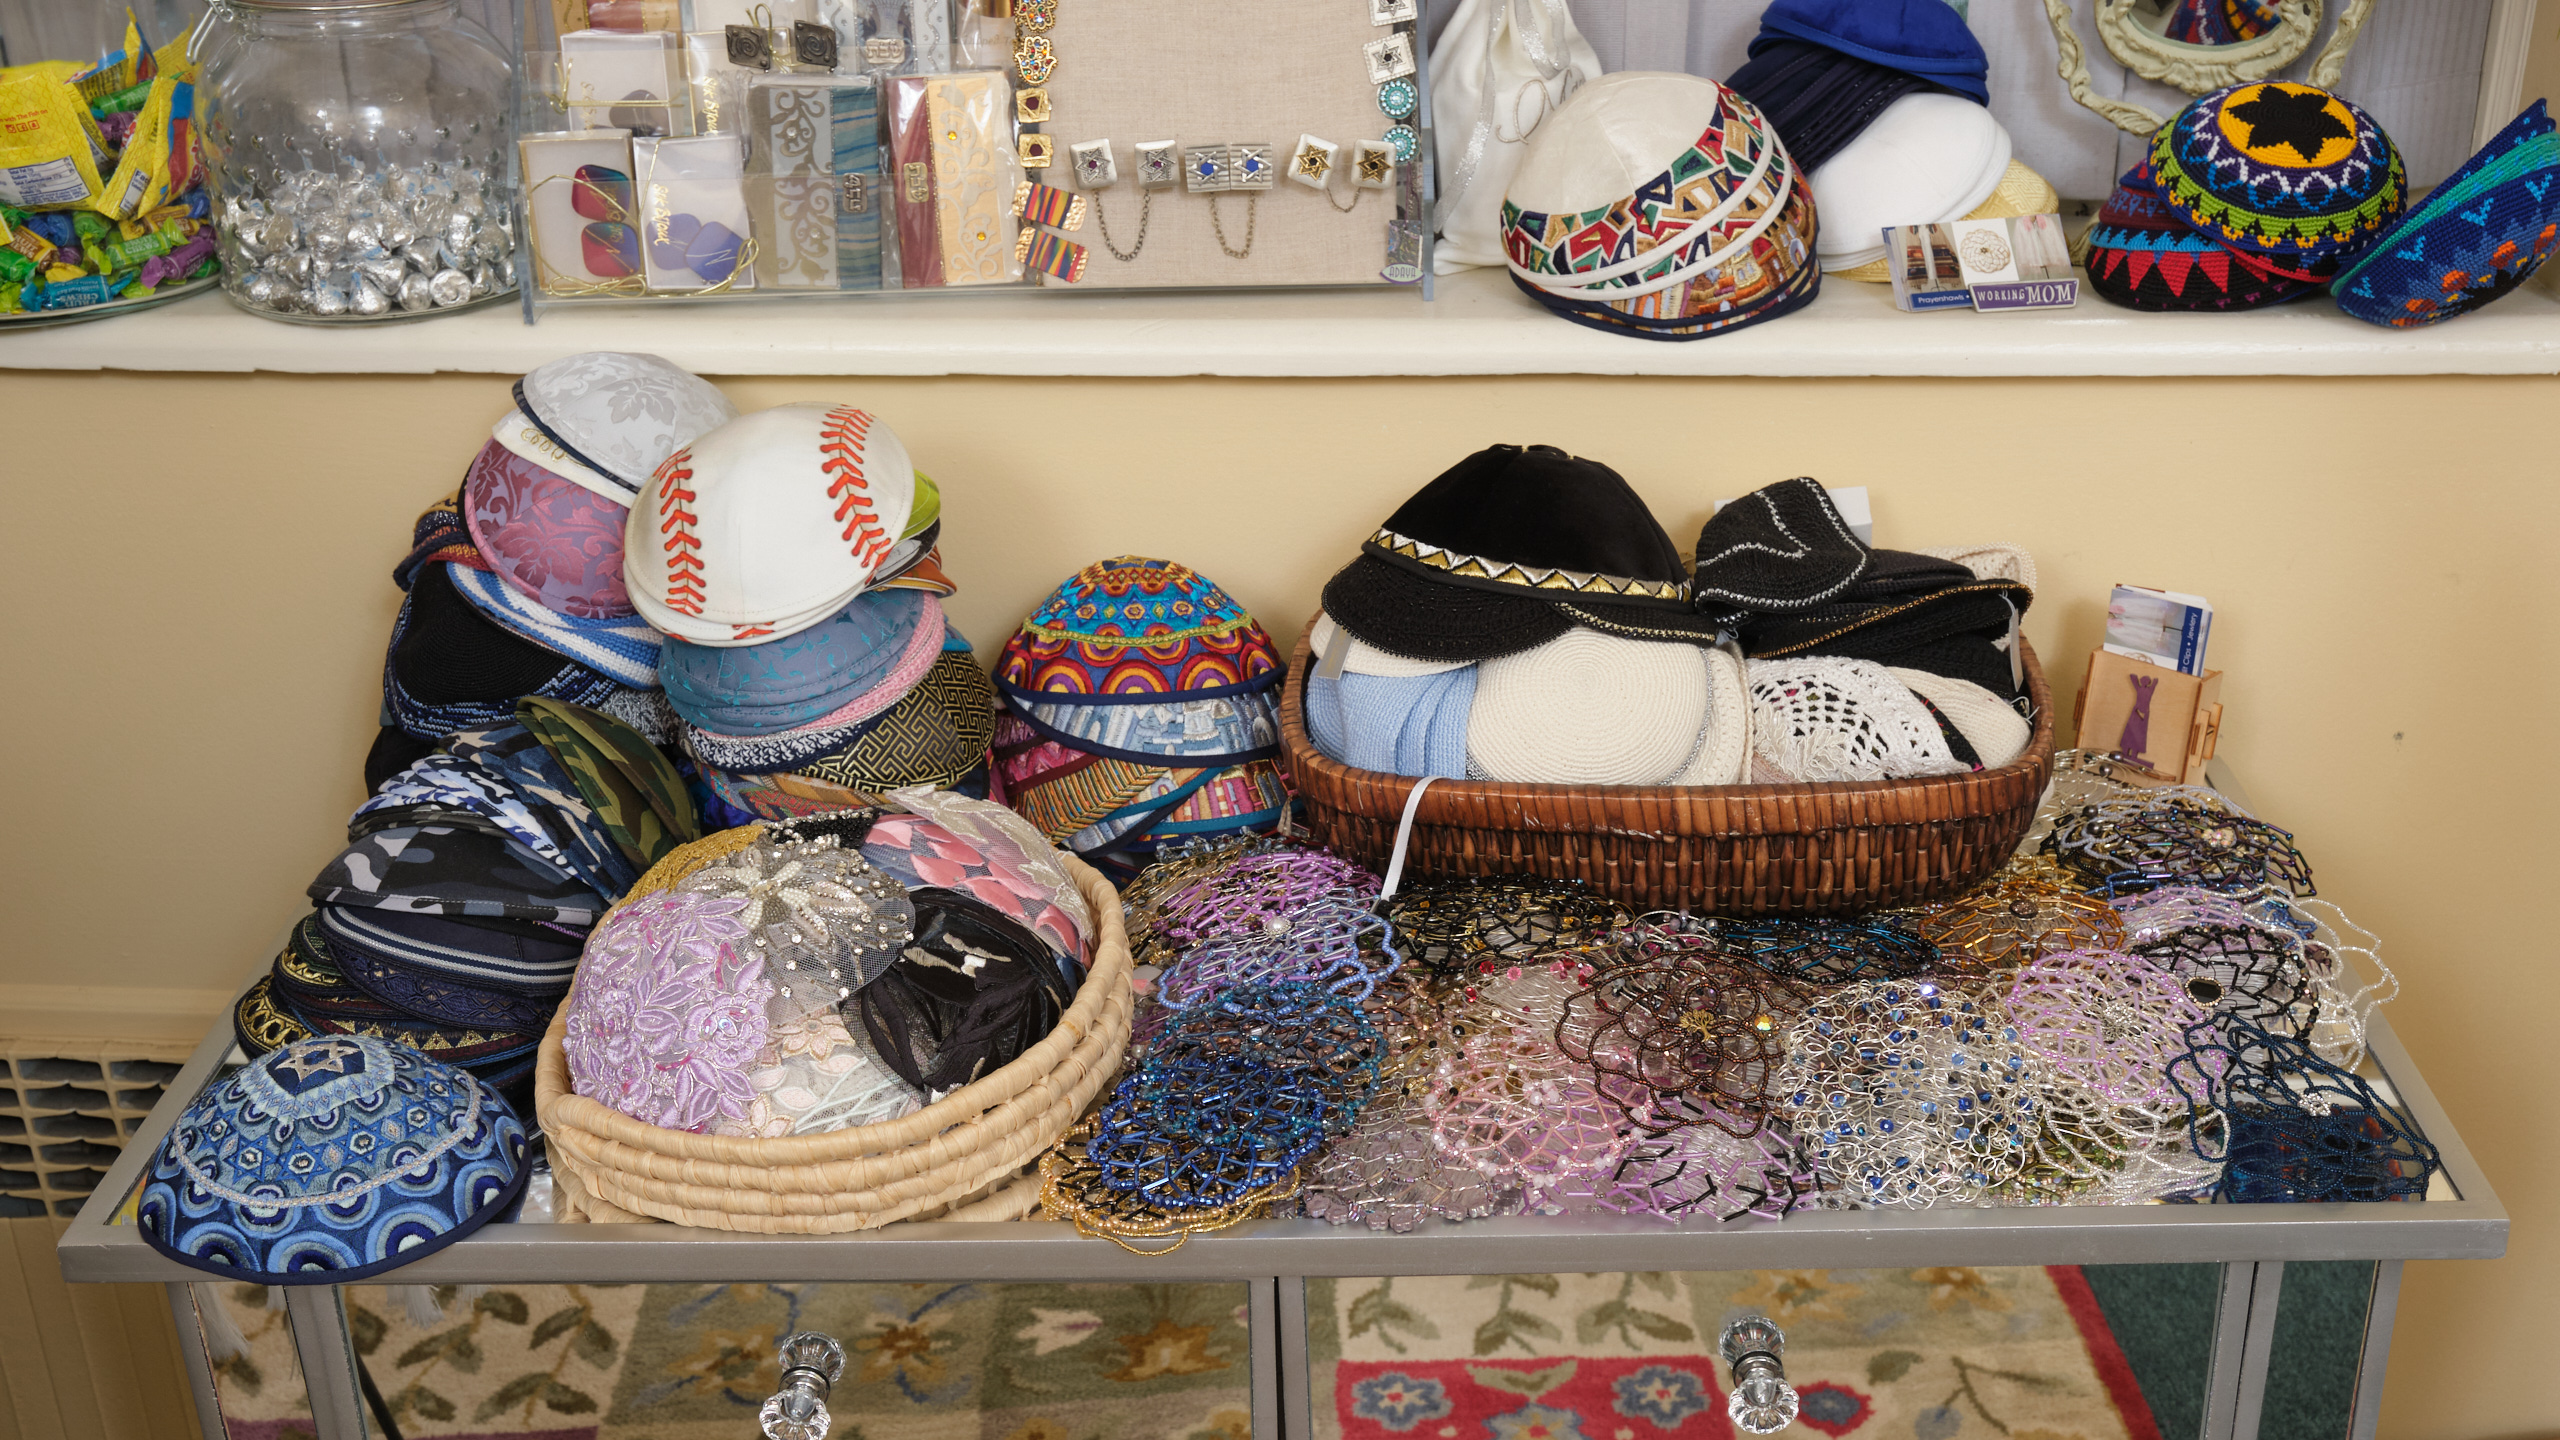 Table full of personalized kippah.